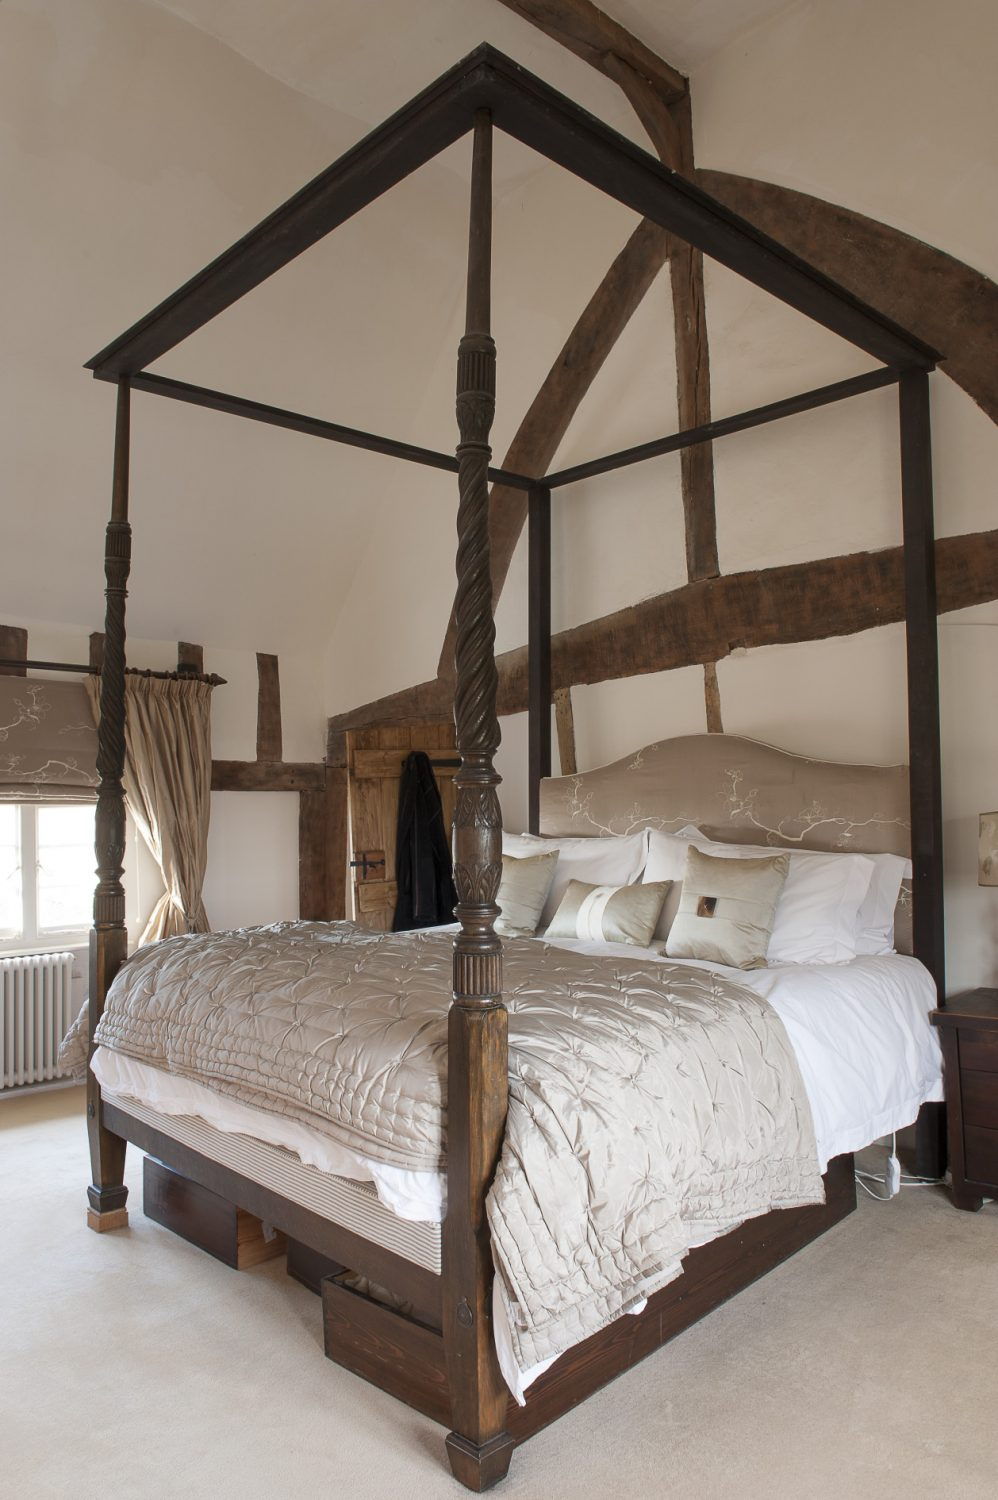 """The previous owner asked if we'd like to buy the bed, which with all the canopy had originally cost £13,000,"" says Charlotte. ""It was lovely but out of our budget so we had to say no. So we were pleasantly surprised to find it still here when we moved in."""